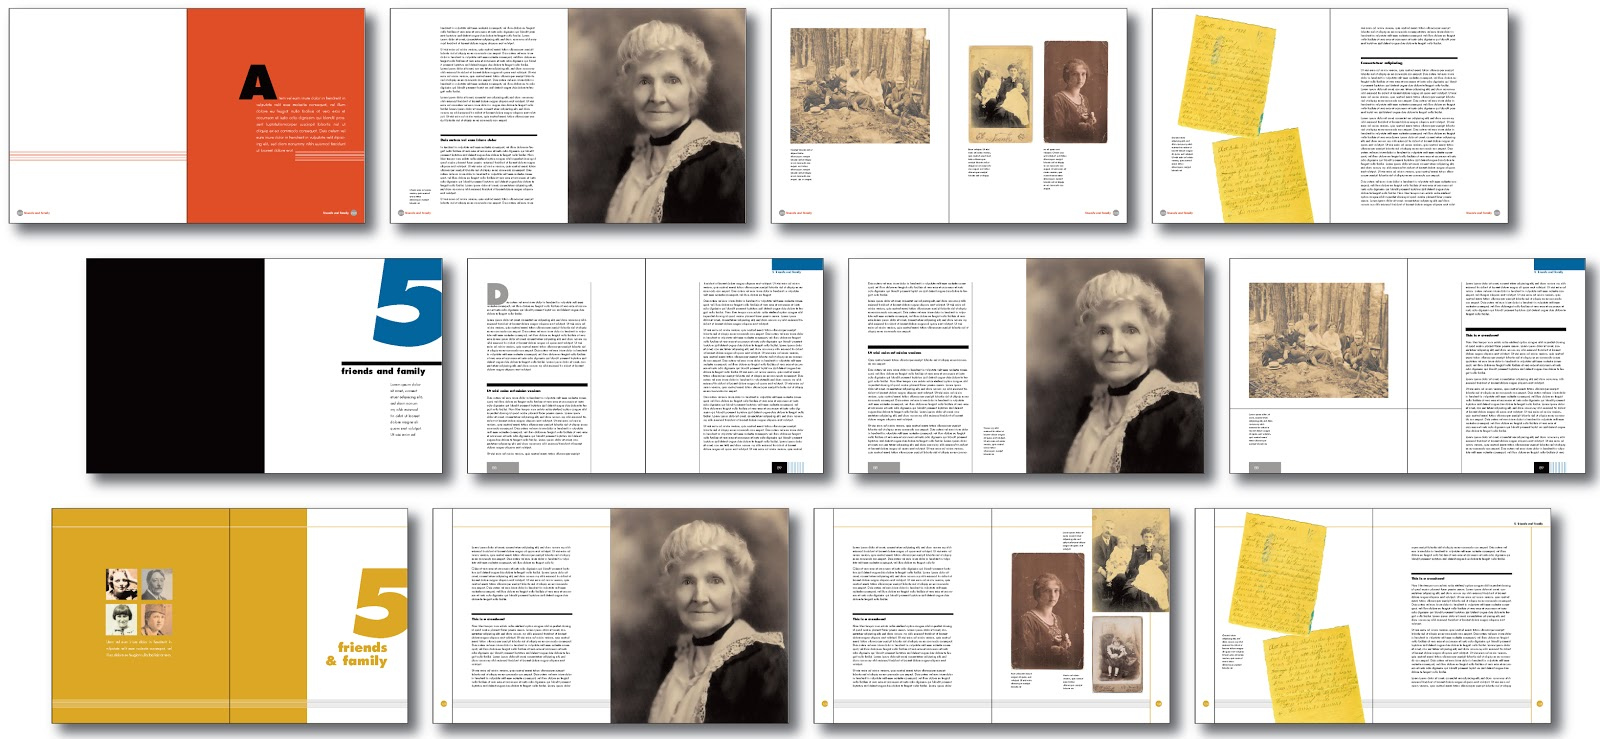 Jane designed this for Ancestry book templates